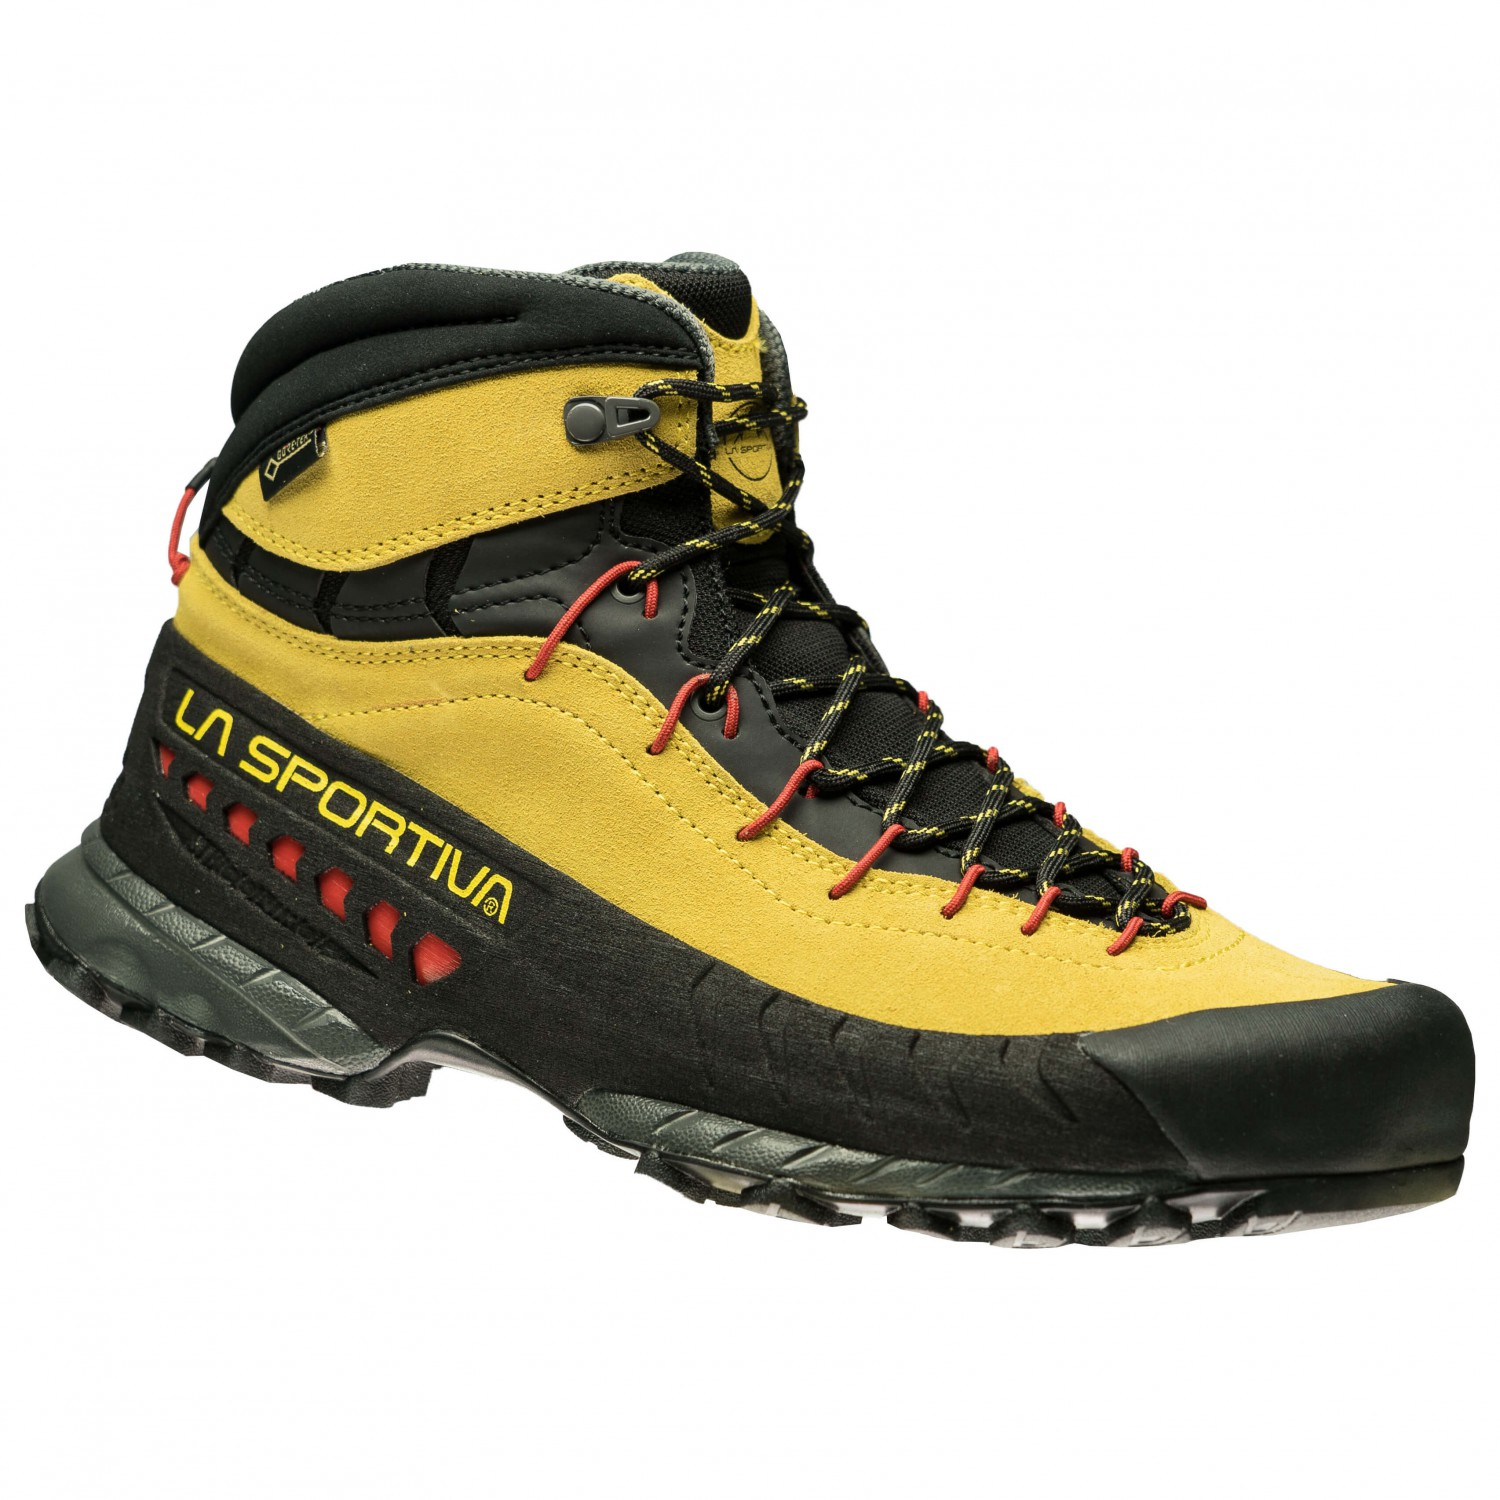 Mammut Hiking Shoes Review